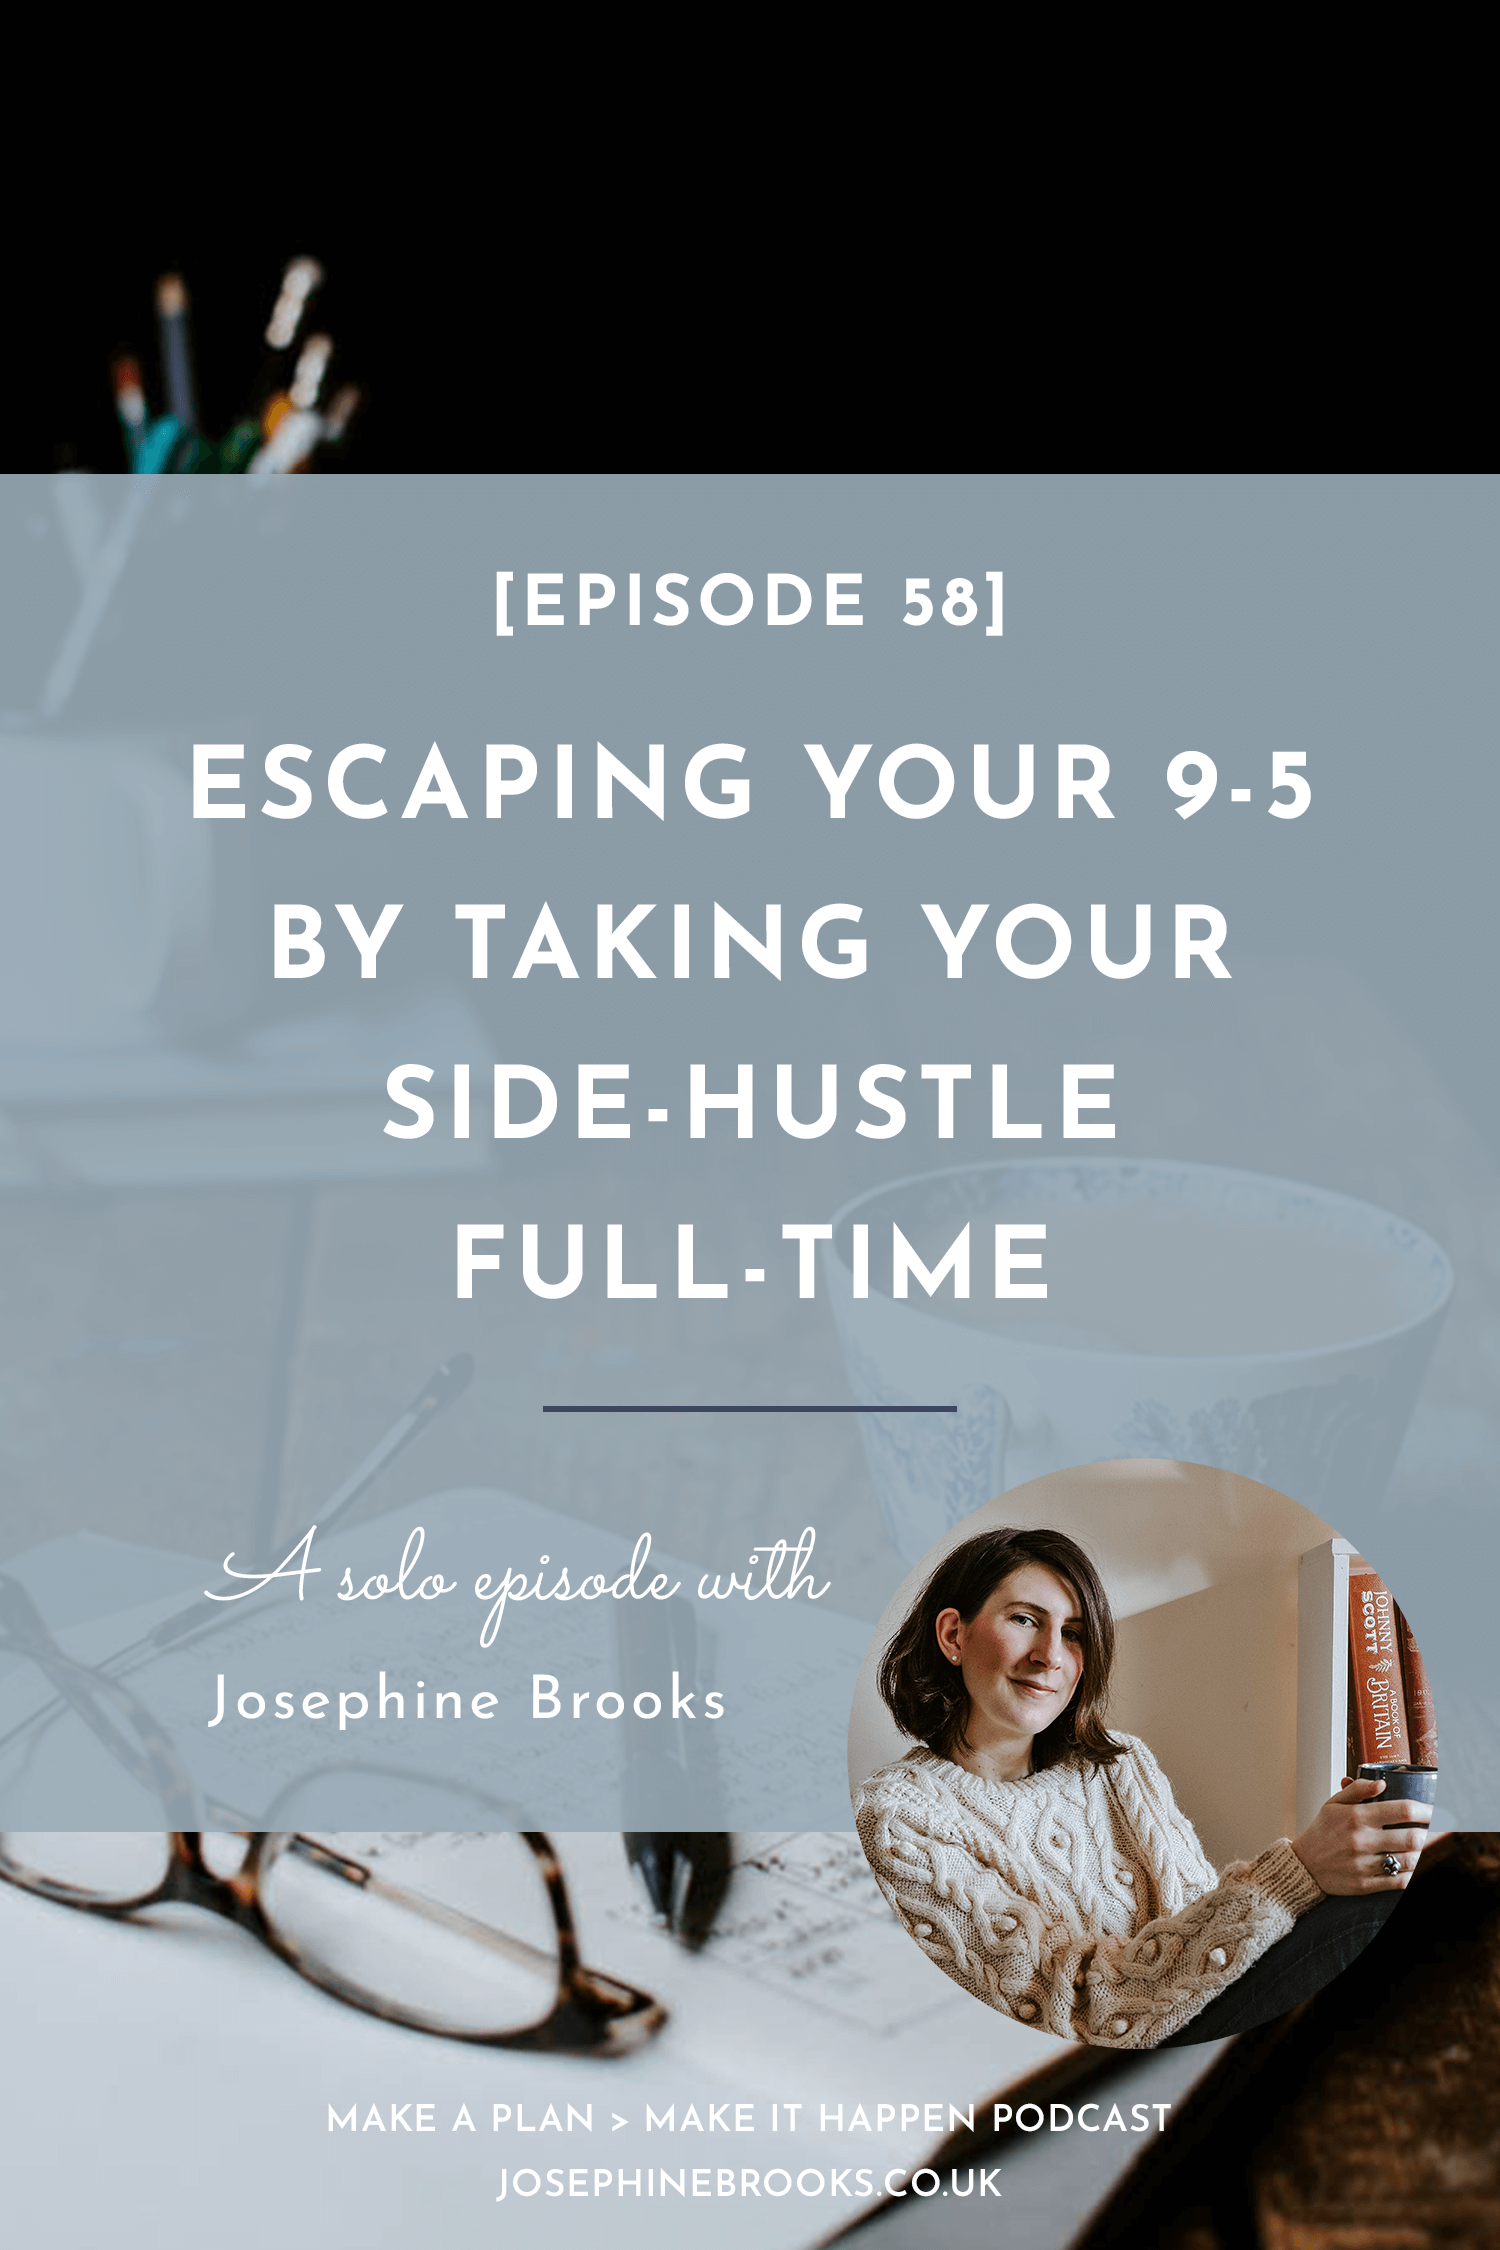 Escaping your 9-5 by taking your side-hustle full-time with Josephine Brooks - Make a Plan Make it Happen podcast